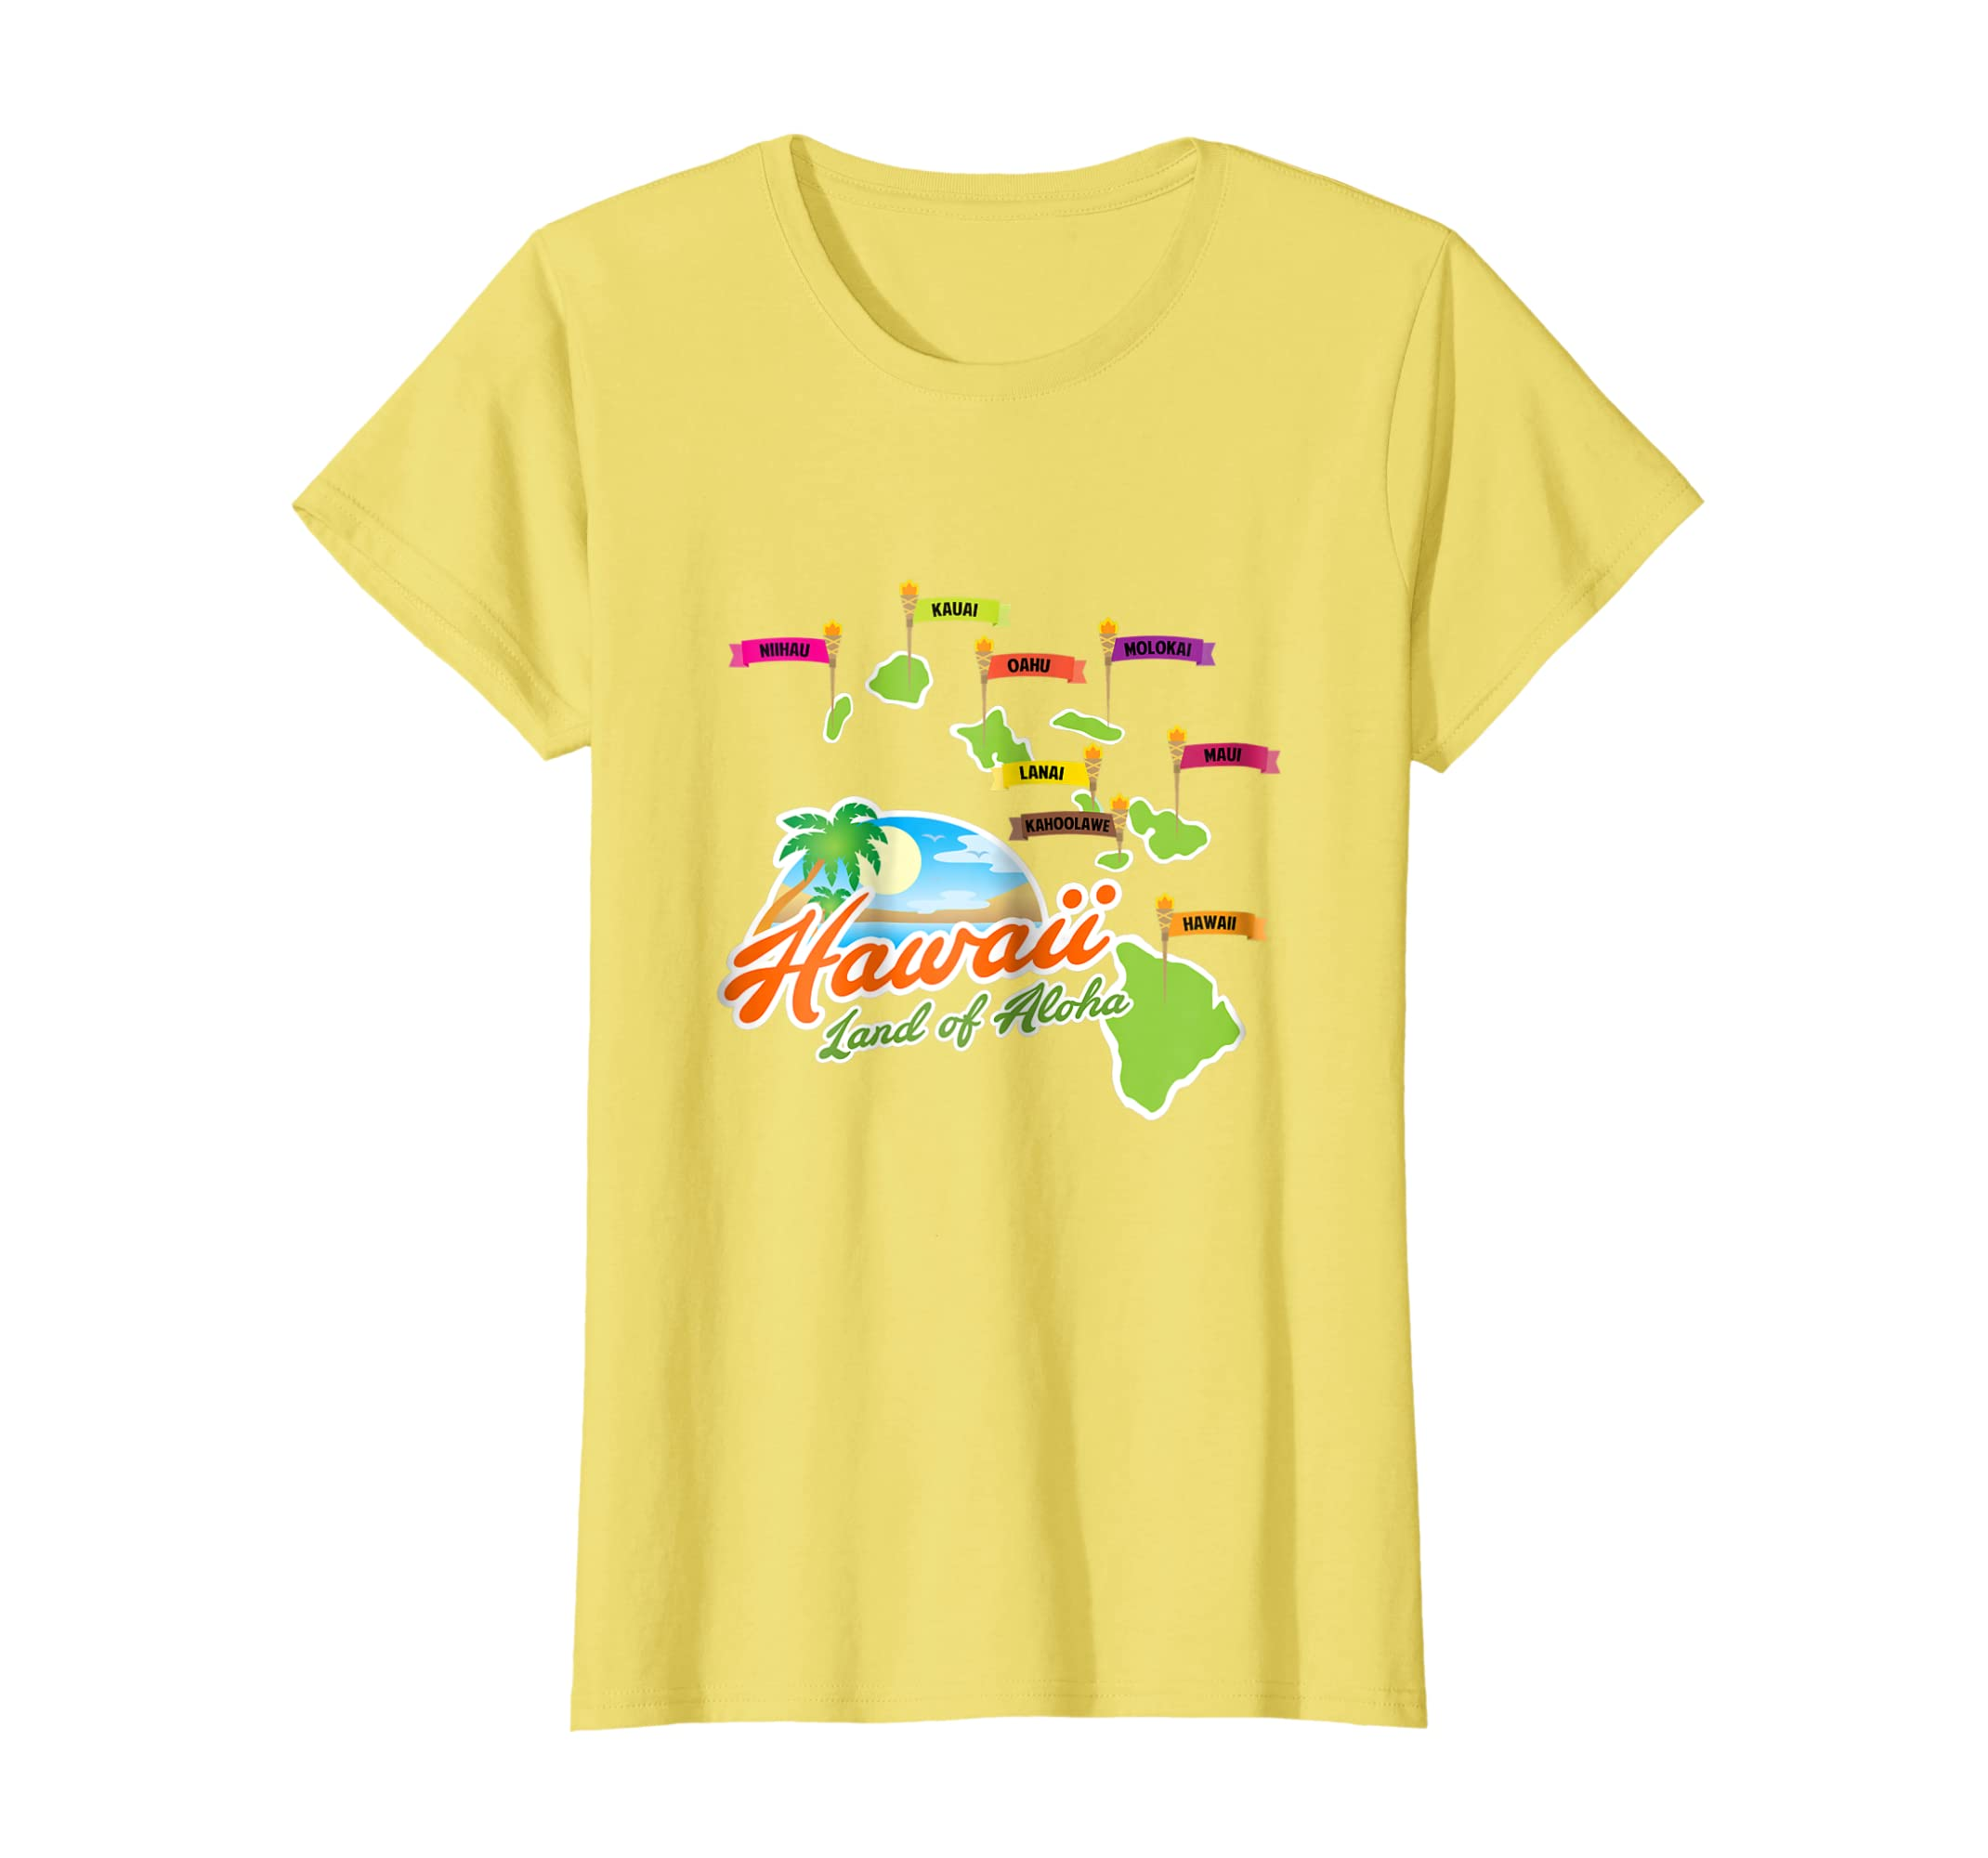 677d787b5 Amazon.com: Hawaiian Islands T-Shirt - Hawaii Land of Aloha Graphic Tee:  Clothing